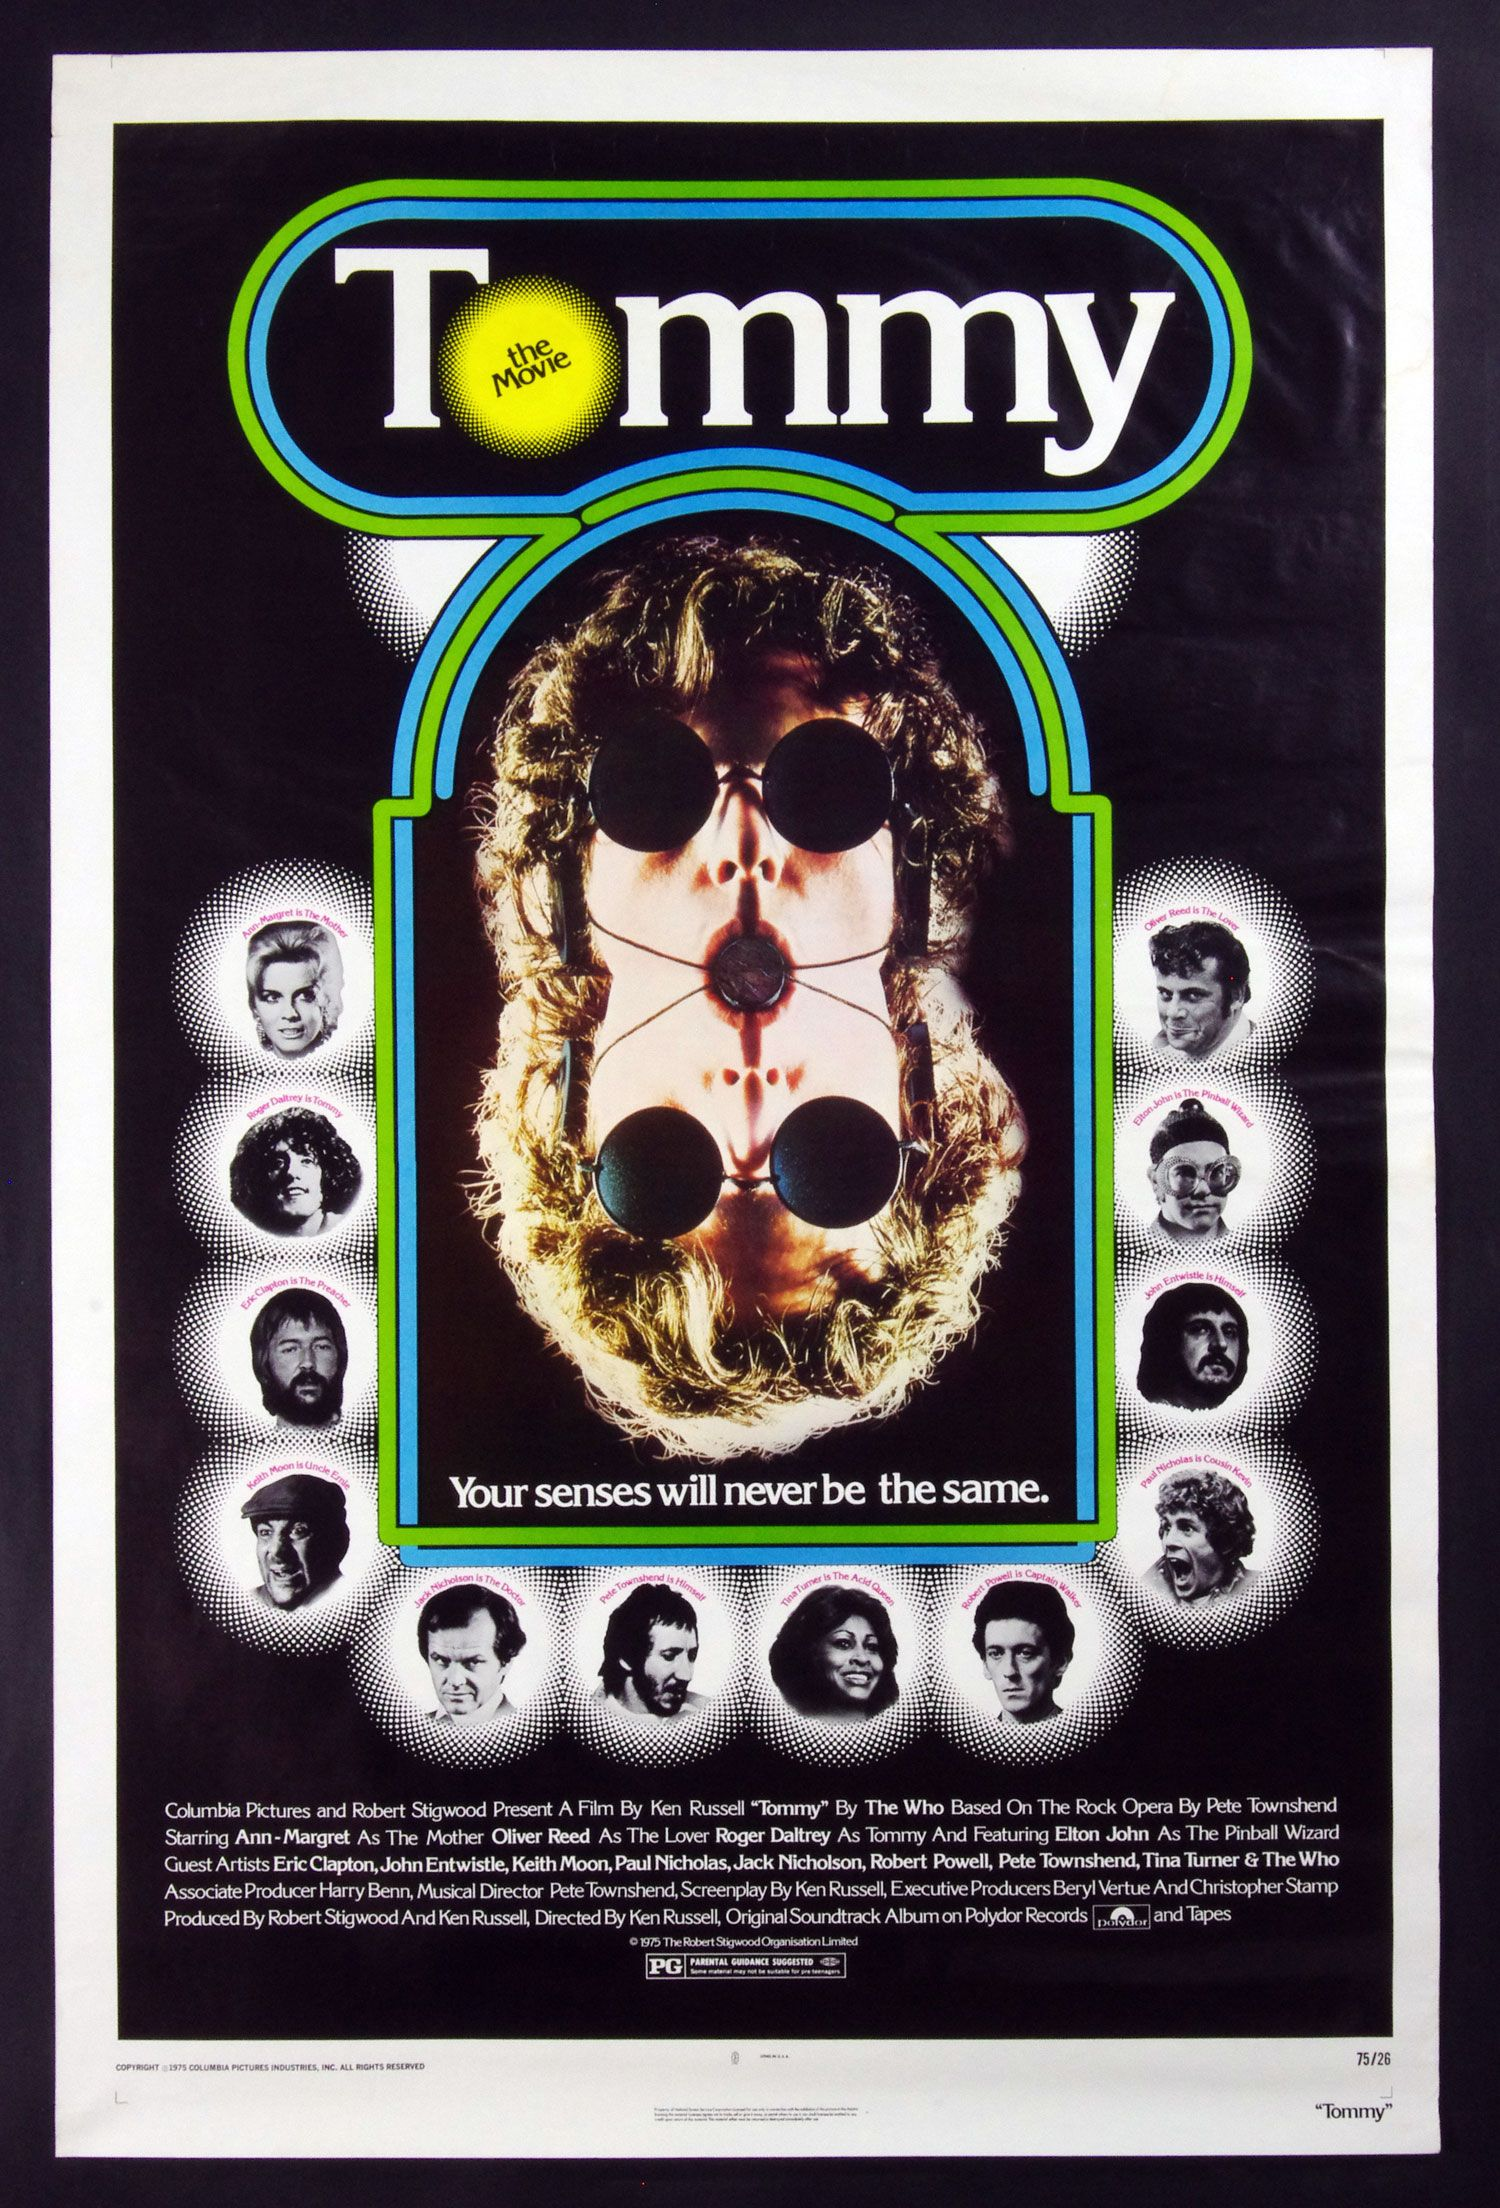 Tommy 1975 Movie Original Poster 27x41 Peter Townsand Eric Clapton Tina Turner Movie Posters Rock Opera Oliver Reed